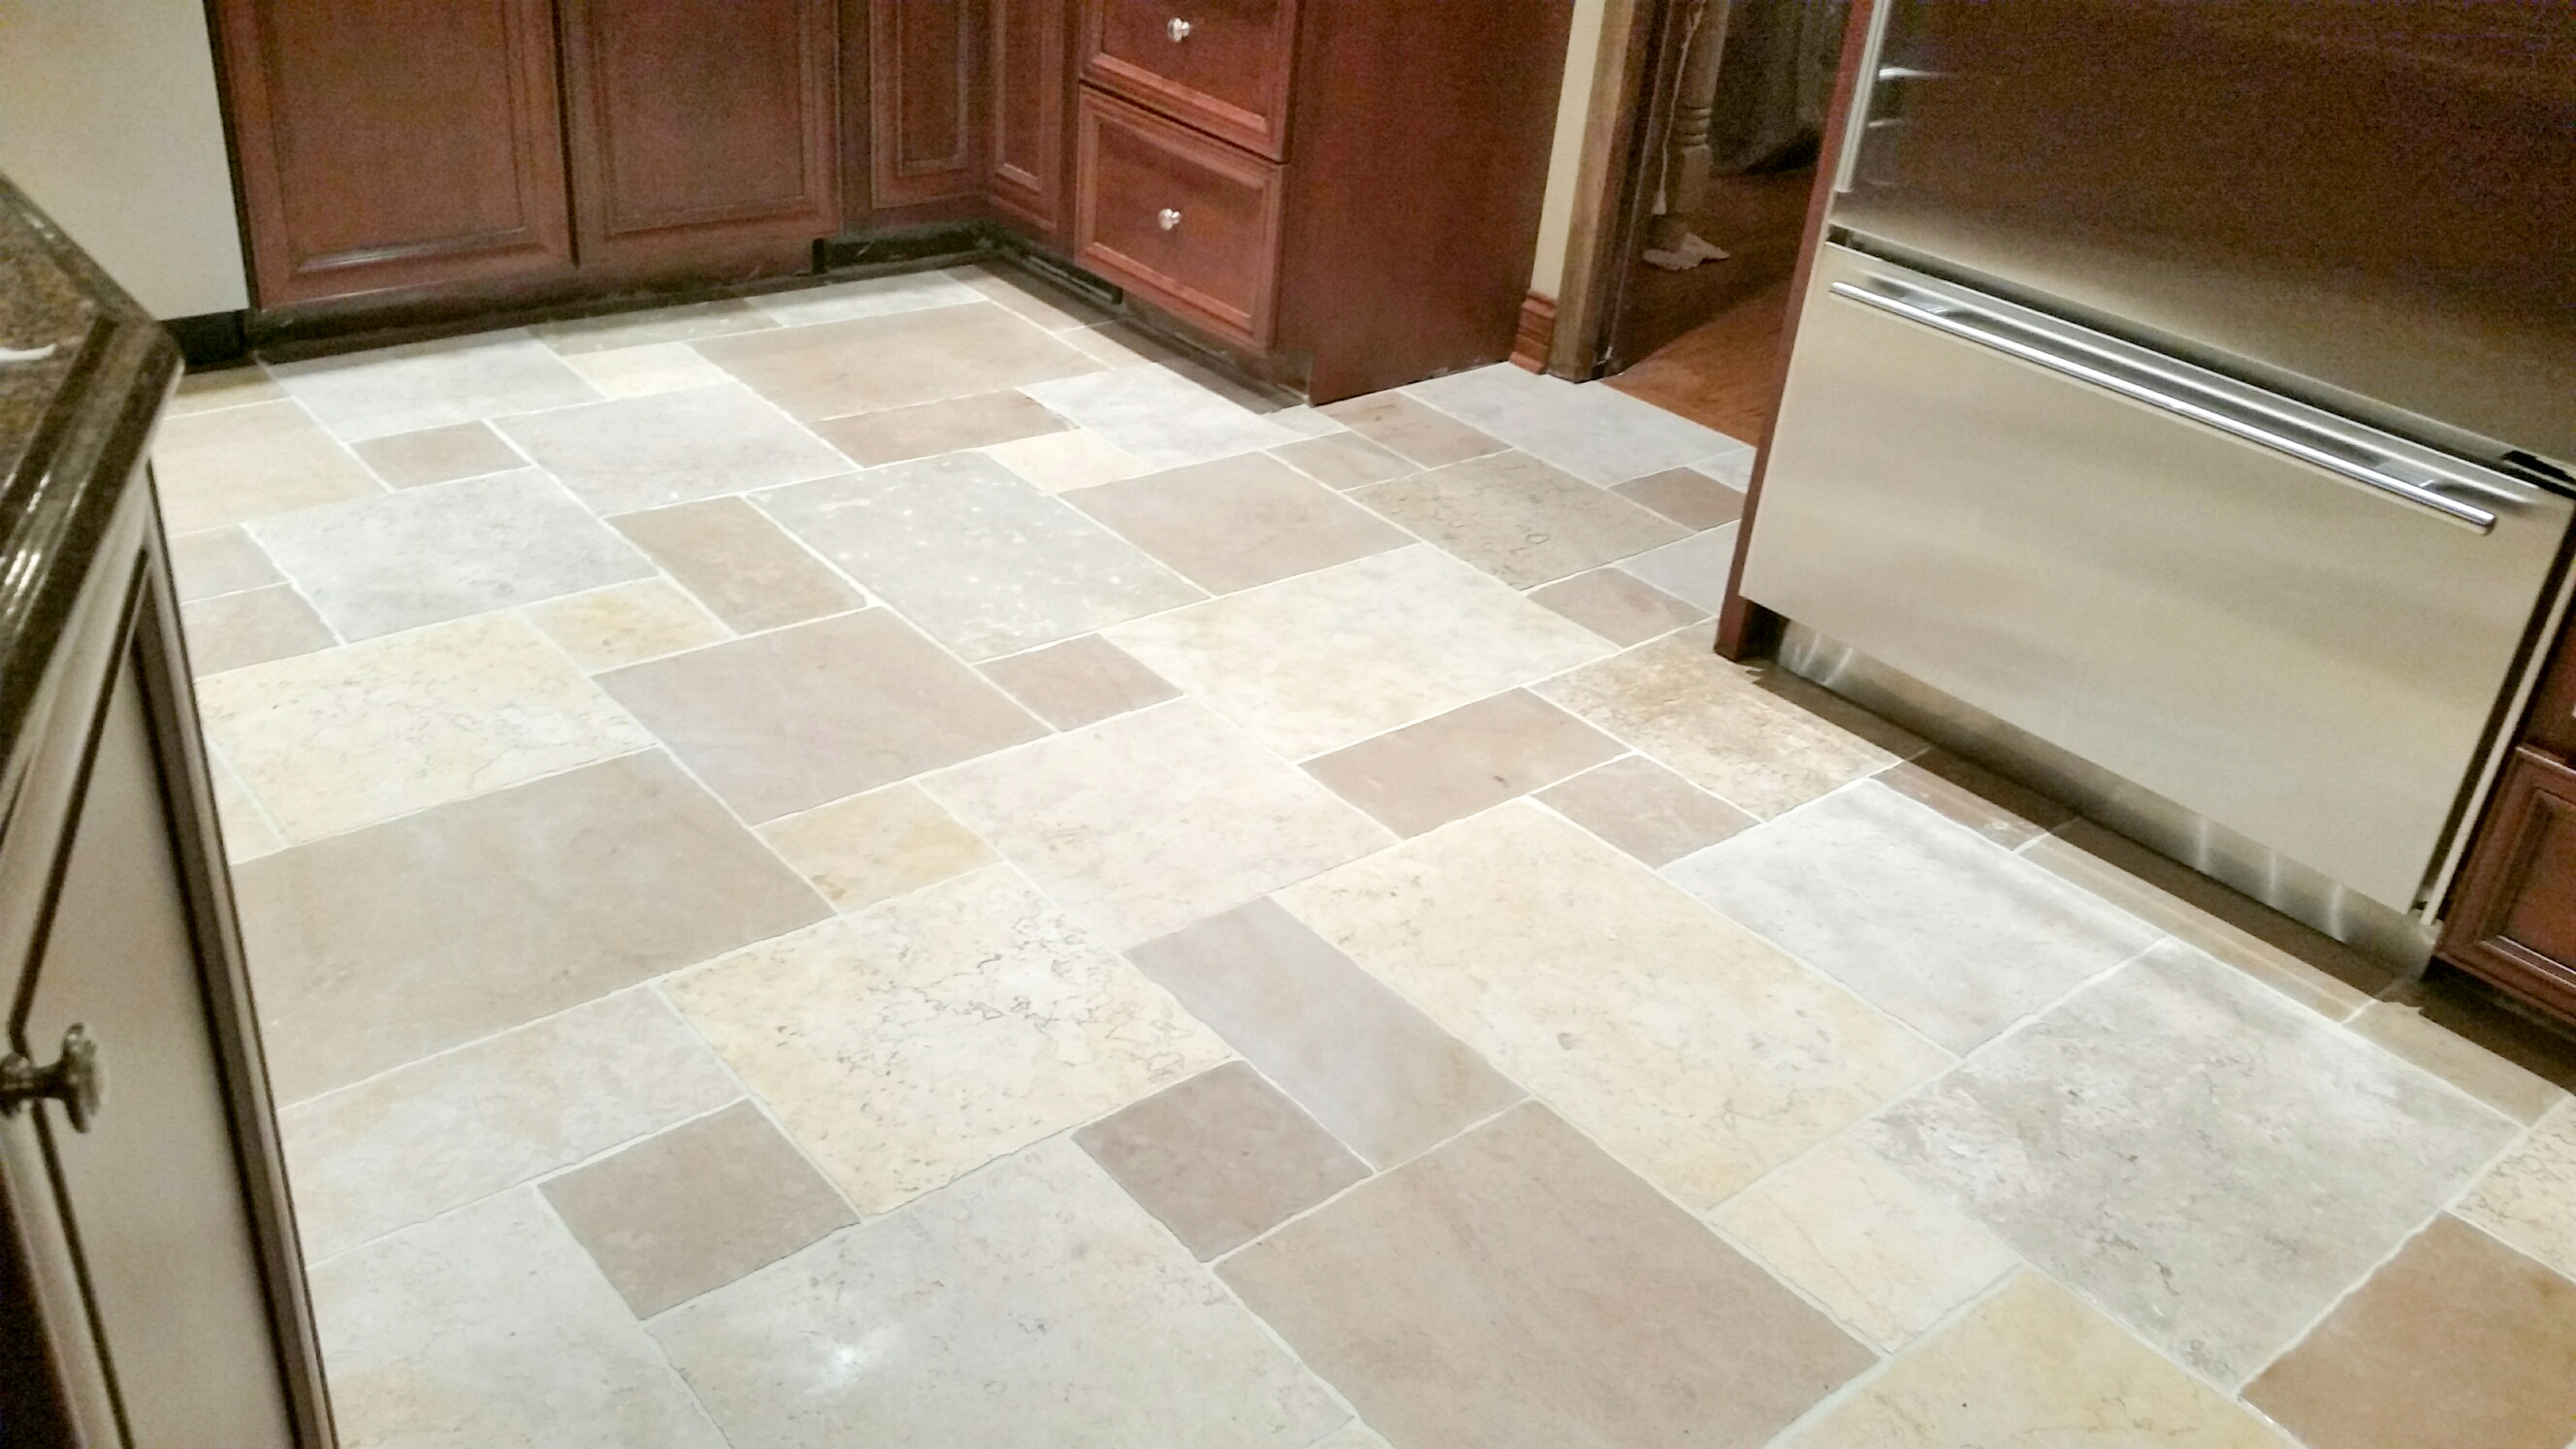 Kitchen Floor Tiles Pictures Why Choose Ceramic Tile For Your Floor Mr Floor Companies